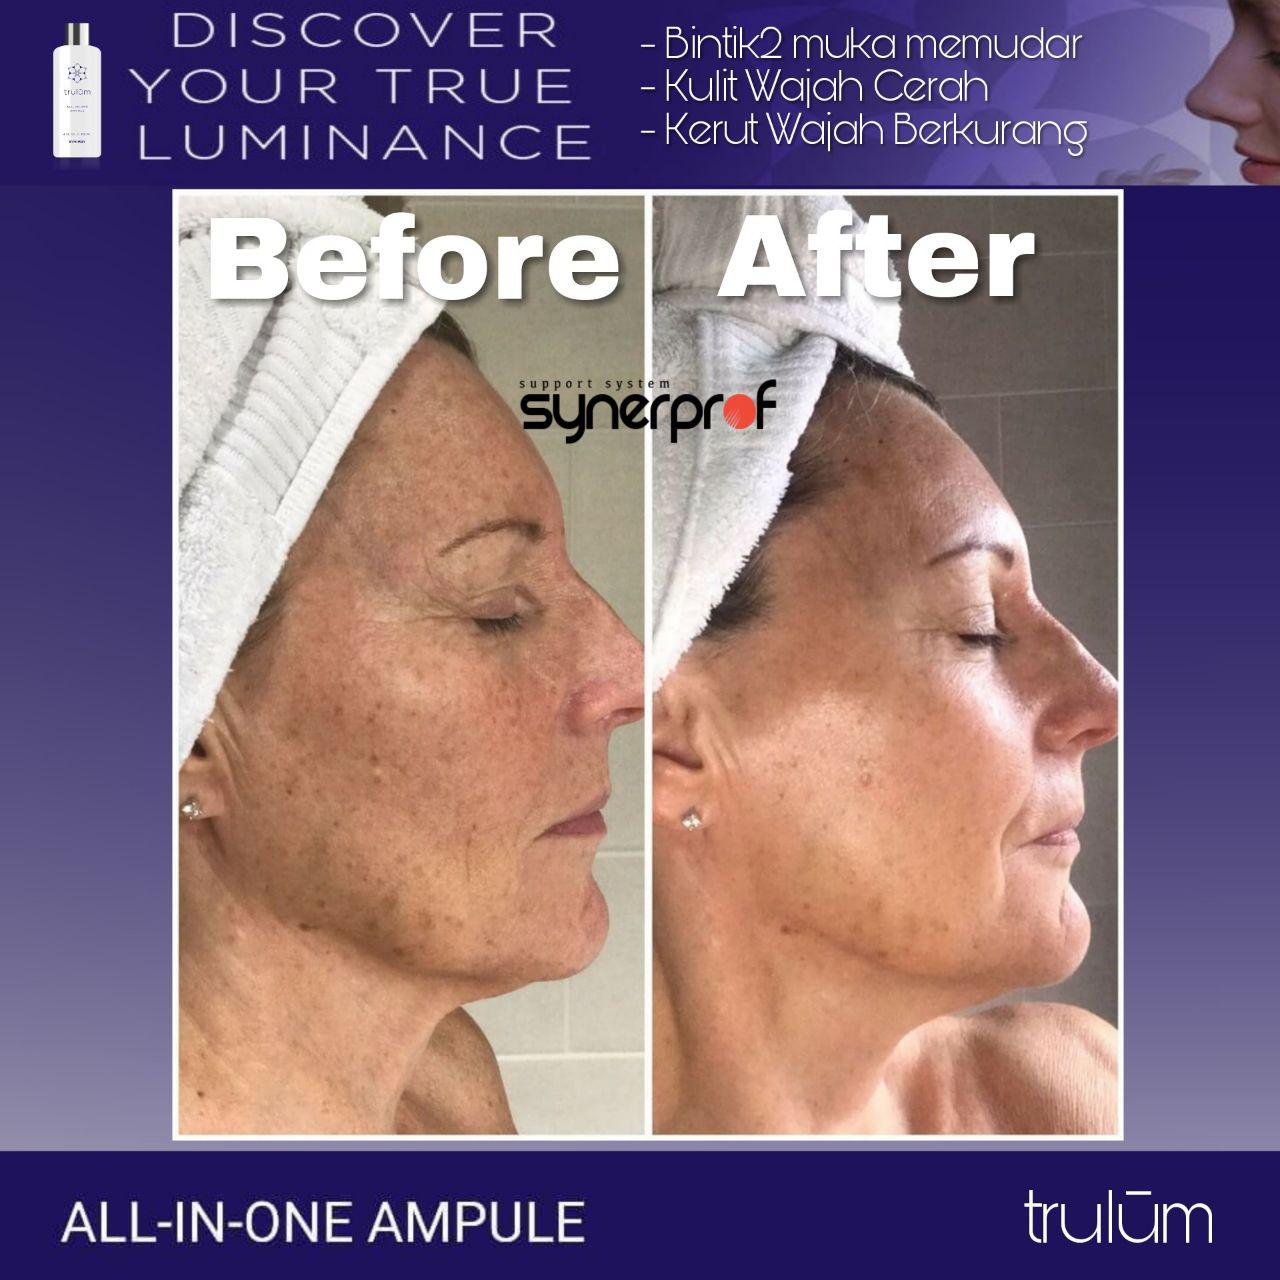 Jual Trulum All In One Ampoule Di Enggal WA: 08112338376